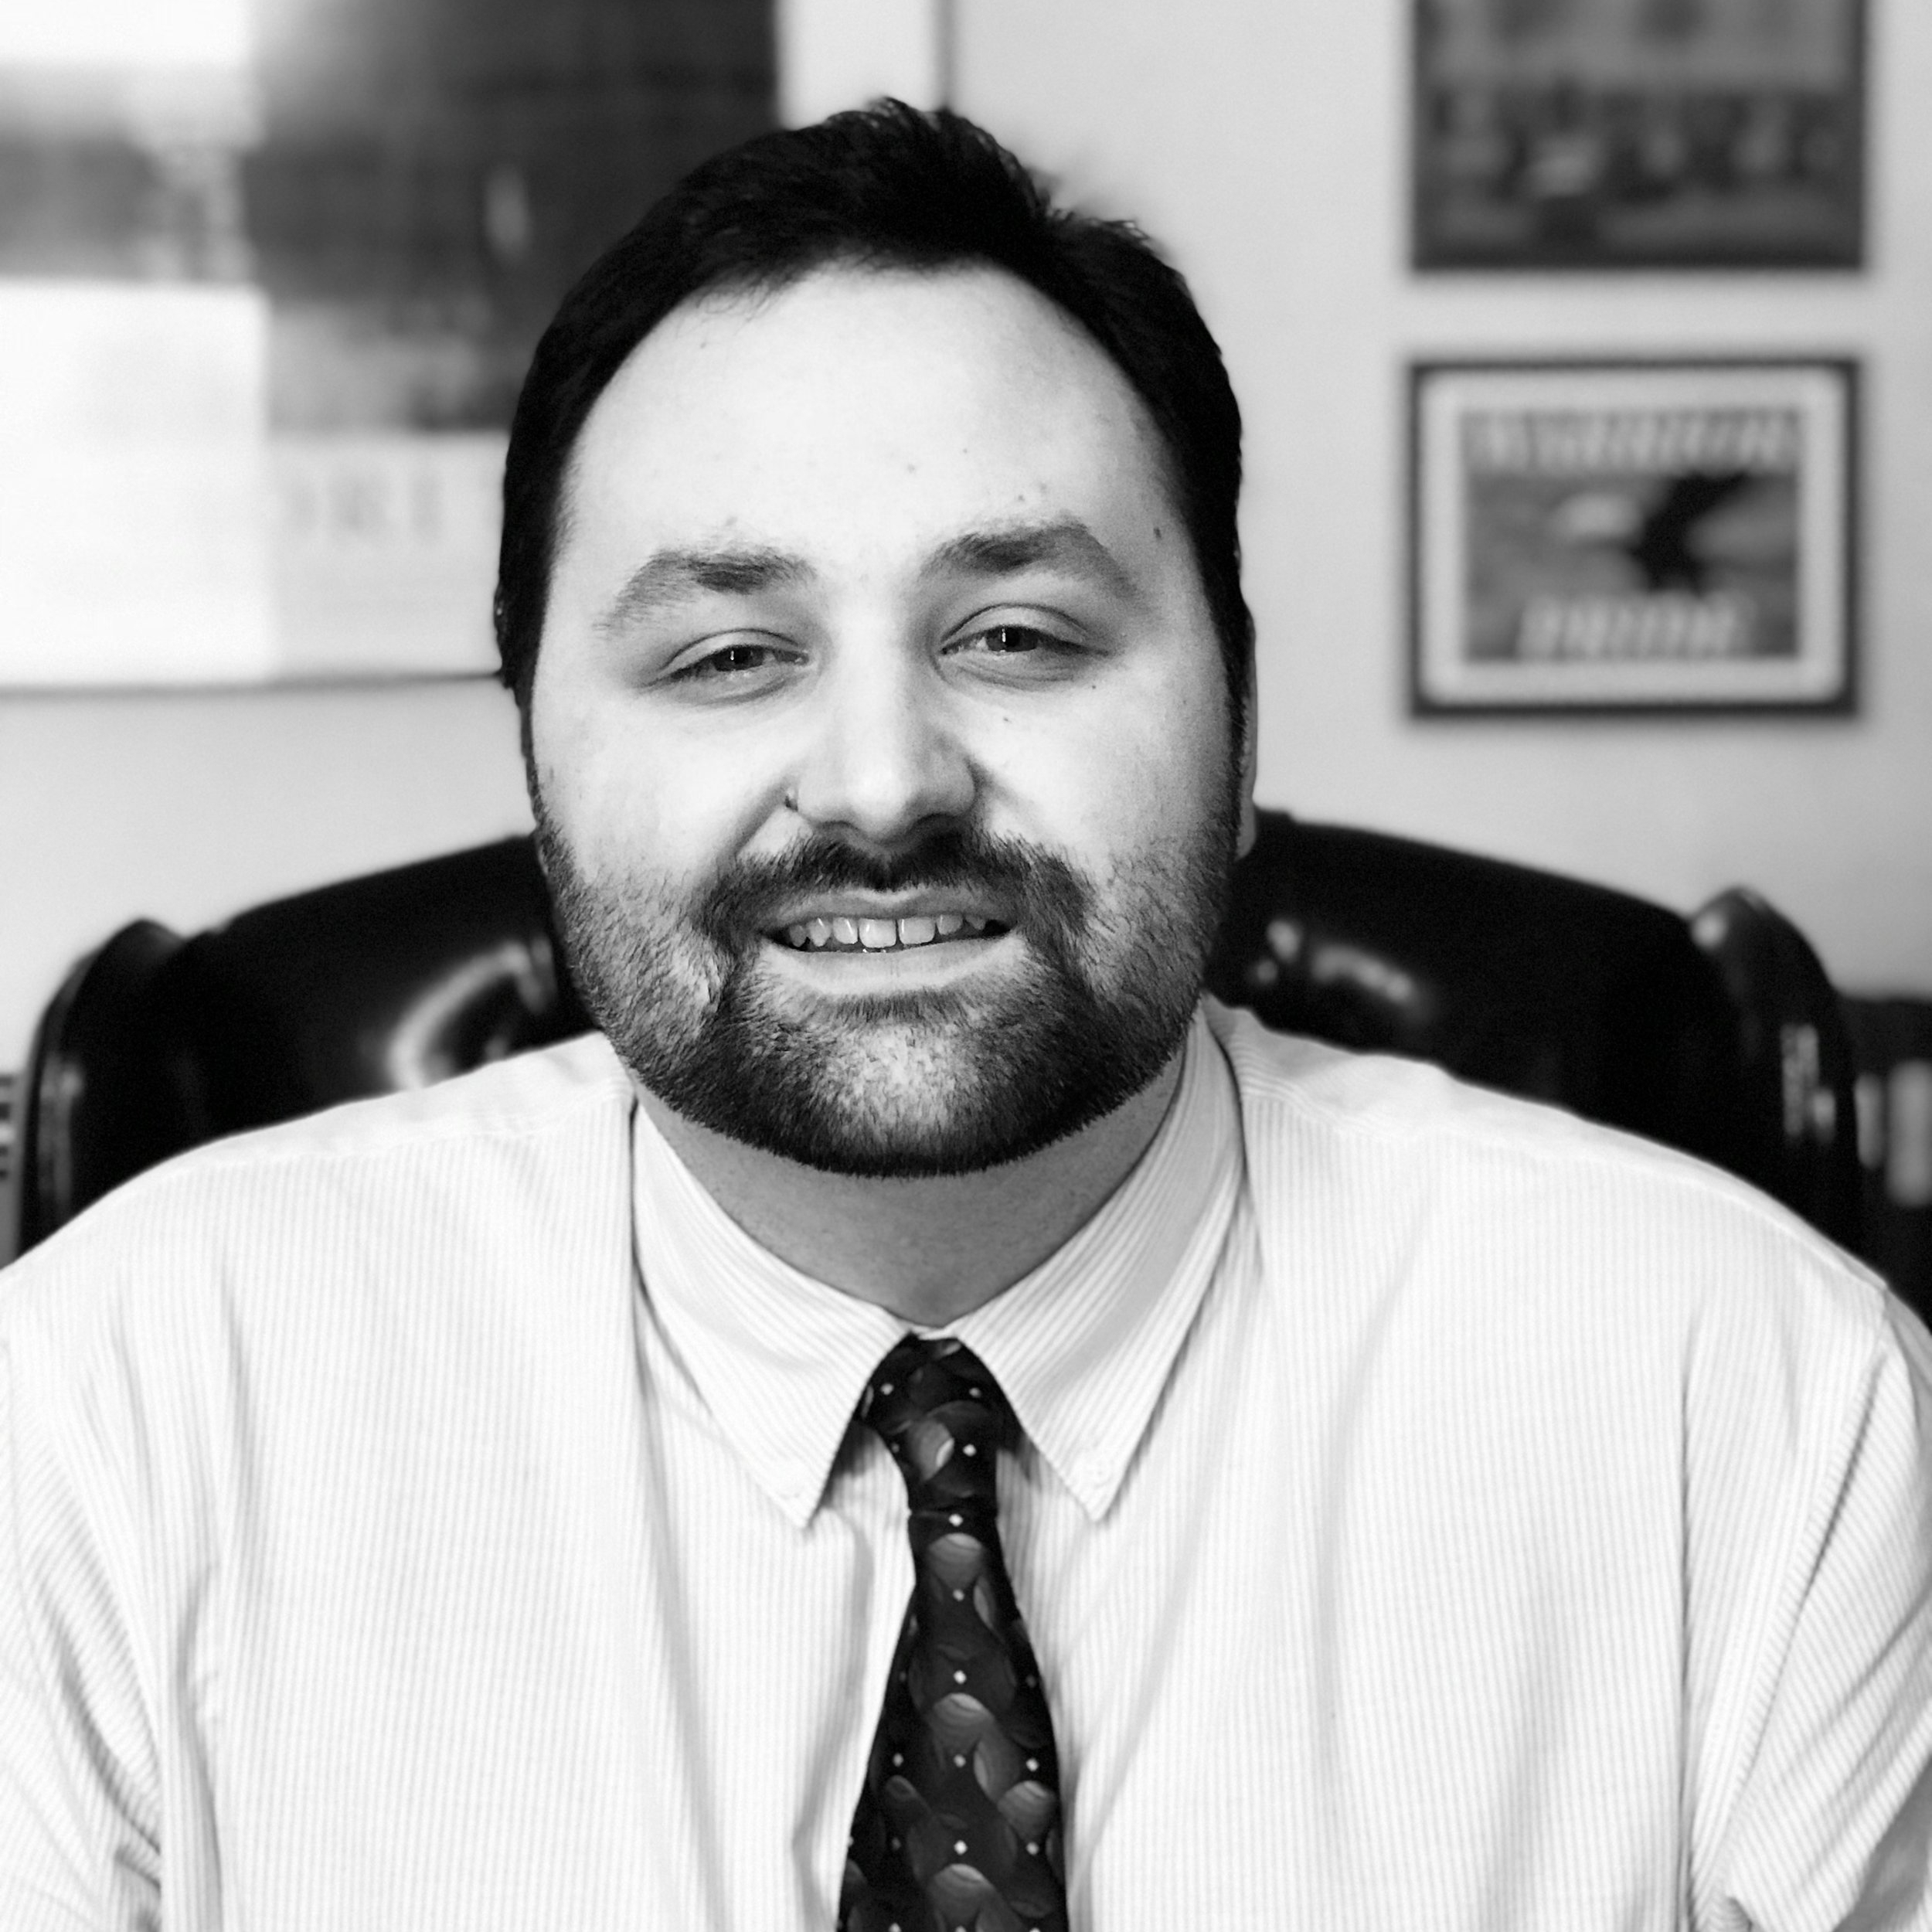 Kevin has been with the Southwest Council, Inc. since January of 2018 and serves as an Alcohol, Tobacco, and Other Drug Prevention Specialist. Kevin provides evidence-based school and community wide-programs in Cumberland, Gloucester, and Salem County. He also assists in facilitating Camp YEY.  When not working, Kevin enjoys playing basketball, cheering on the New York Giants, and spending quality time with family and friends. He is currently pursuing an MS in Mental Health Counseling at Capella University.  Rowan University - BA Psychology